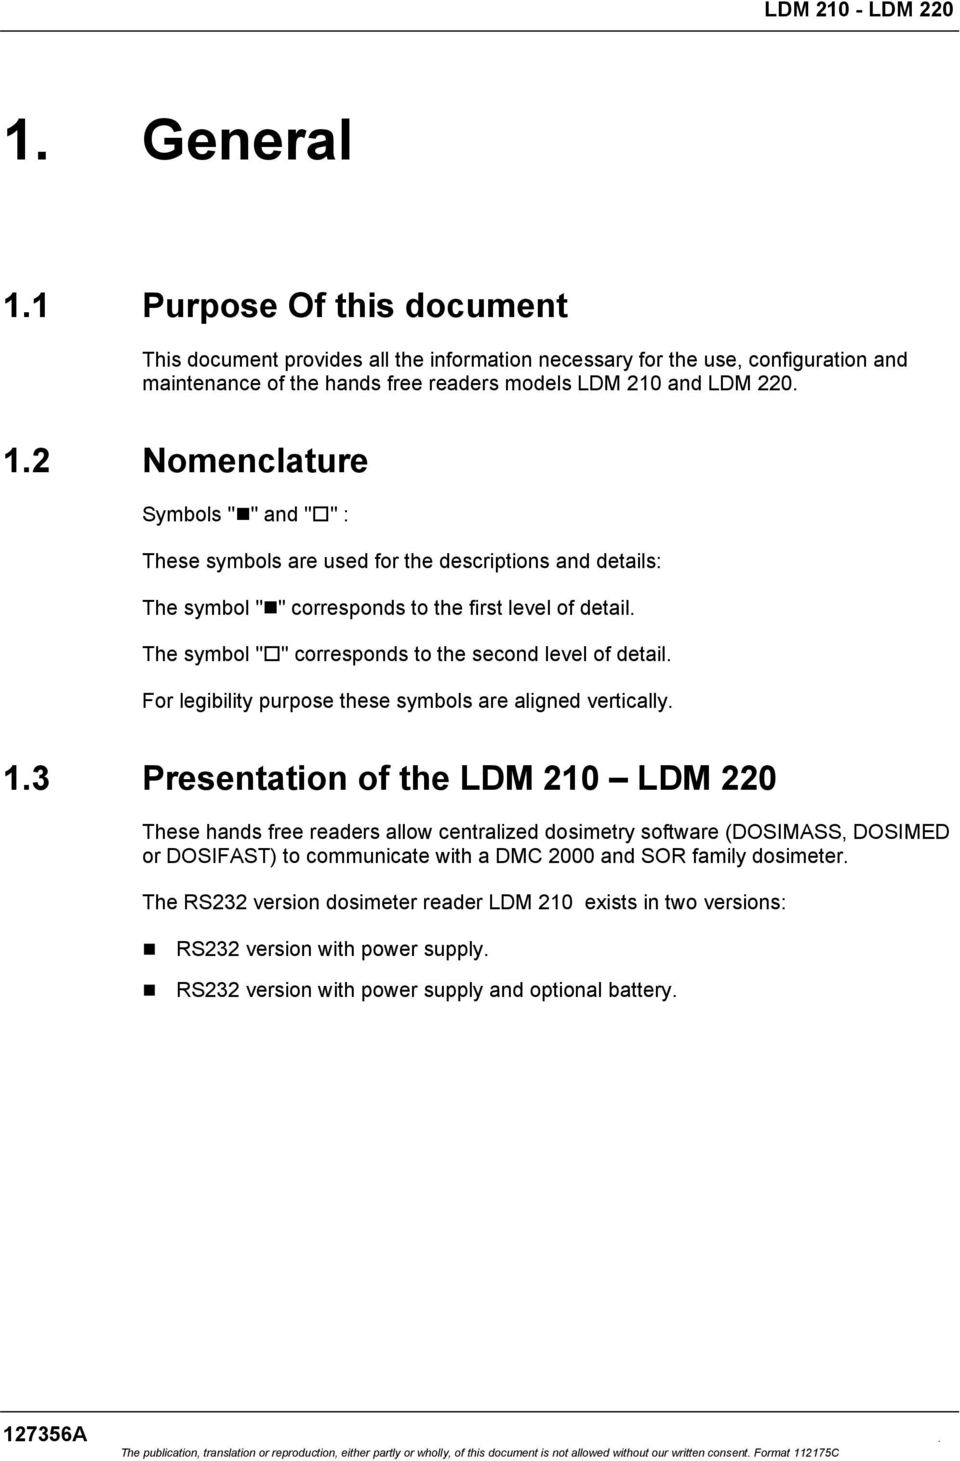 3 Presentation of the LDM 210 LDM 220 These hands free readers allow centralized dosimetry software (DOSIMASS, DOSIMED or DOSIFAST) to communicate with a DMC 2000 and SOR family dosimeter.